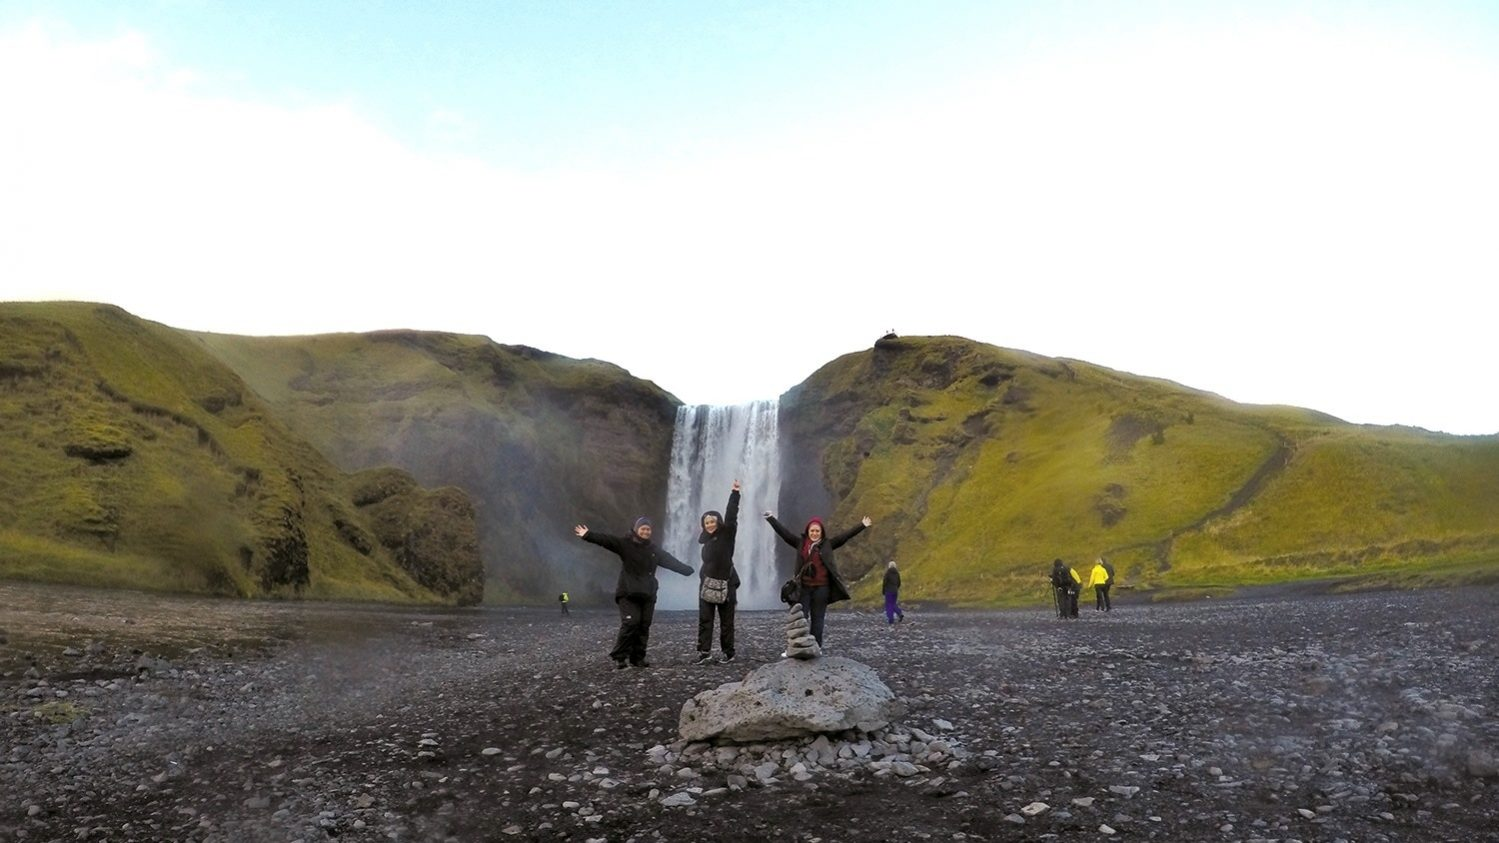 Skogafoss is one of the biggest waterfalls in Iceland, with a drop of 60 metres and 25 metres wide.